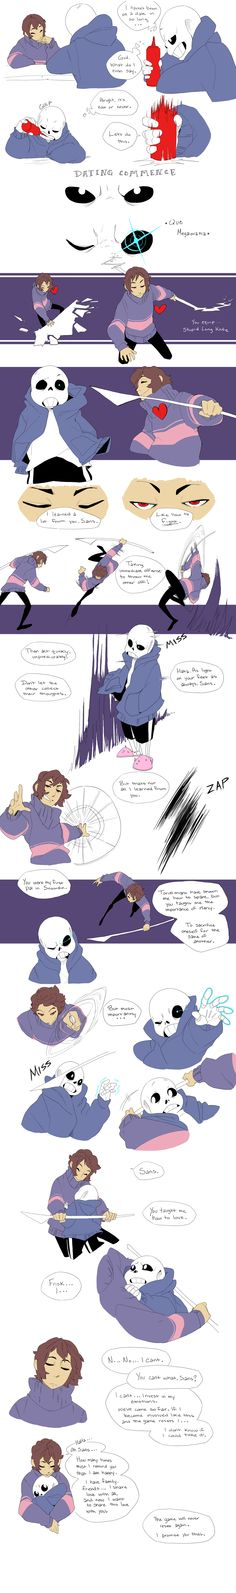 Fight - Undertale by Adzze on DeviantArt - I don't ship them in normal undertale, but this is cute